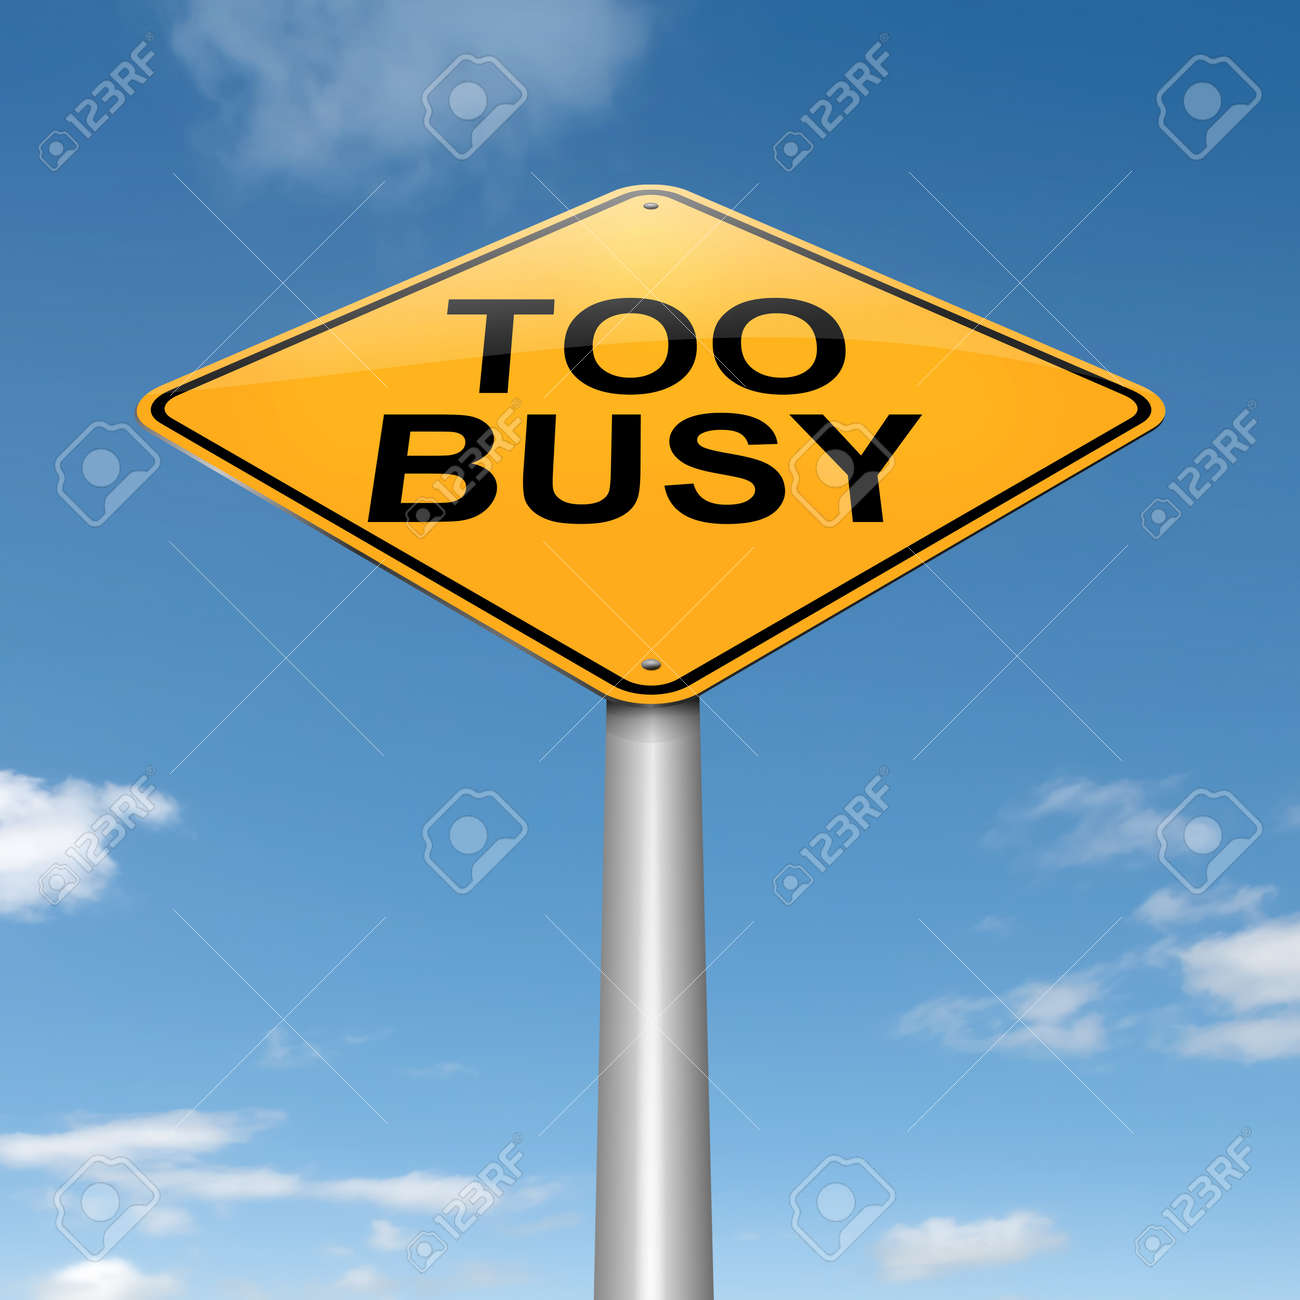 working too much stock photos pictures royalty working too working too much illustration depicting a roadsign a too busy concept sky background